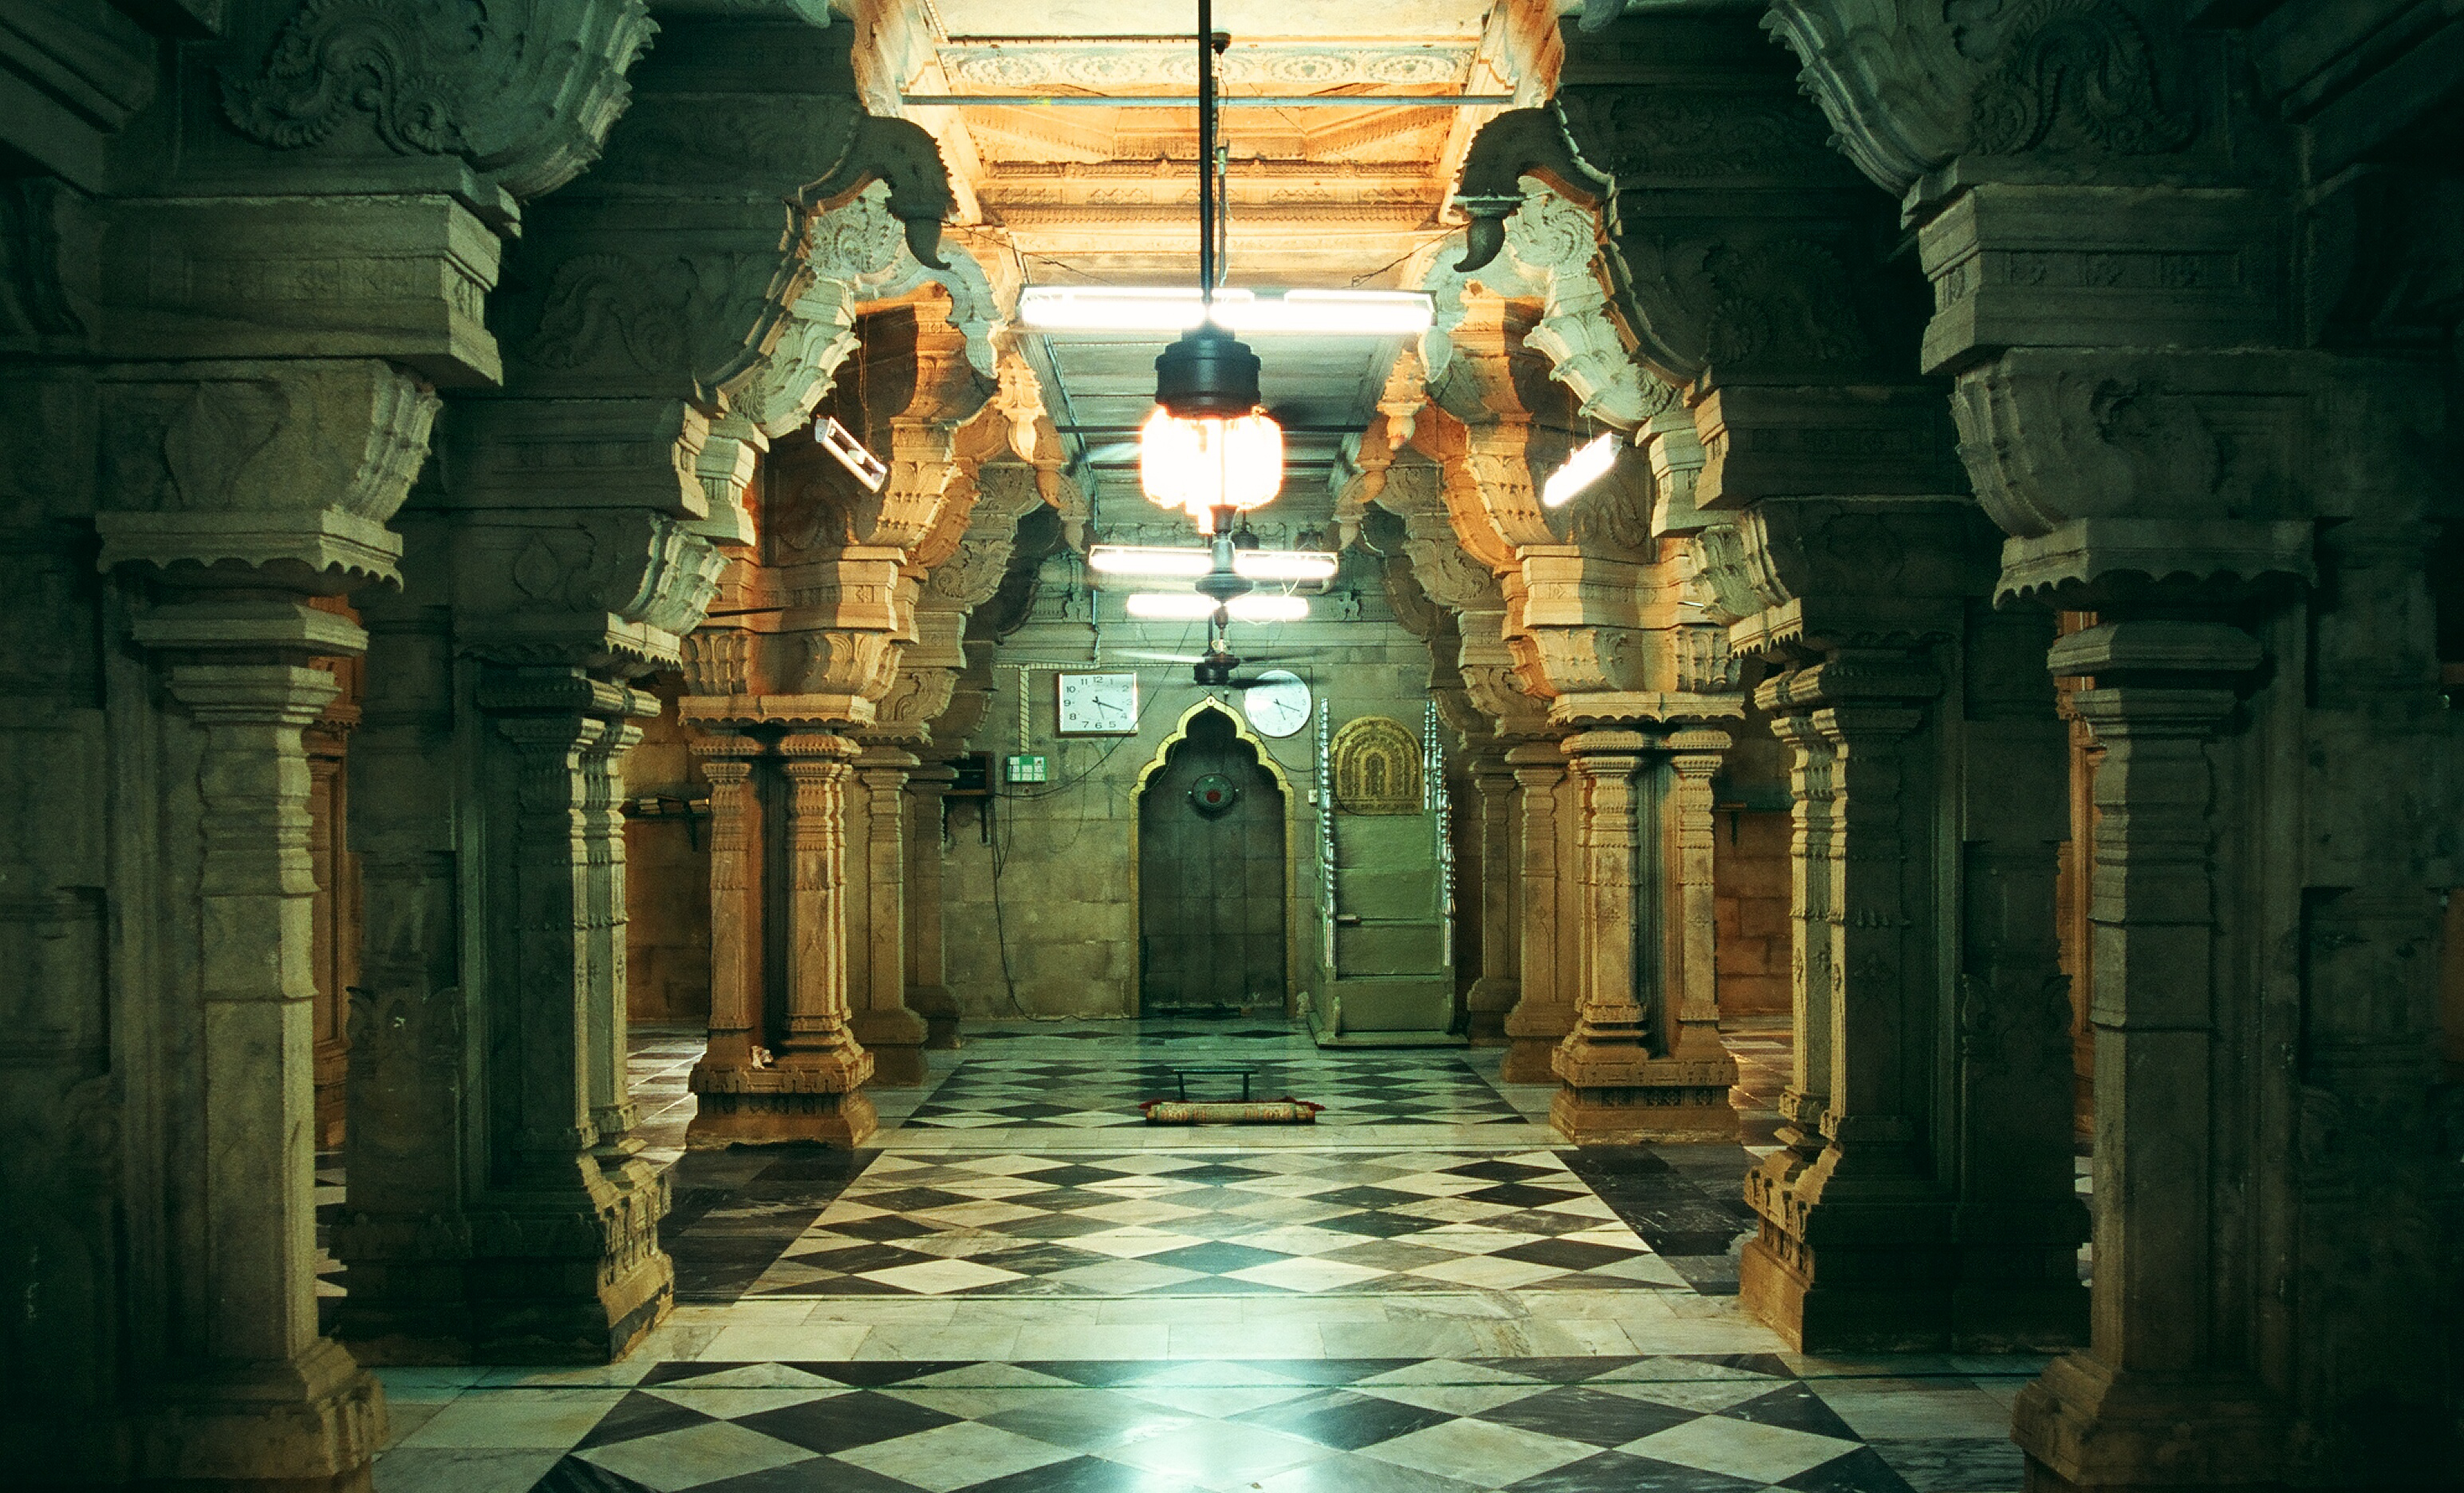 The Jumma Masjid of Kilakarai was built in the 17th century in the style of a Dravidian temple.